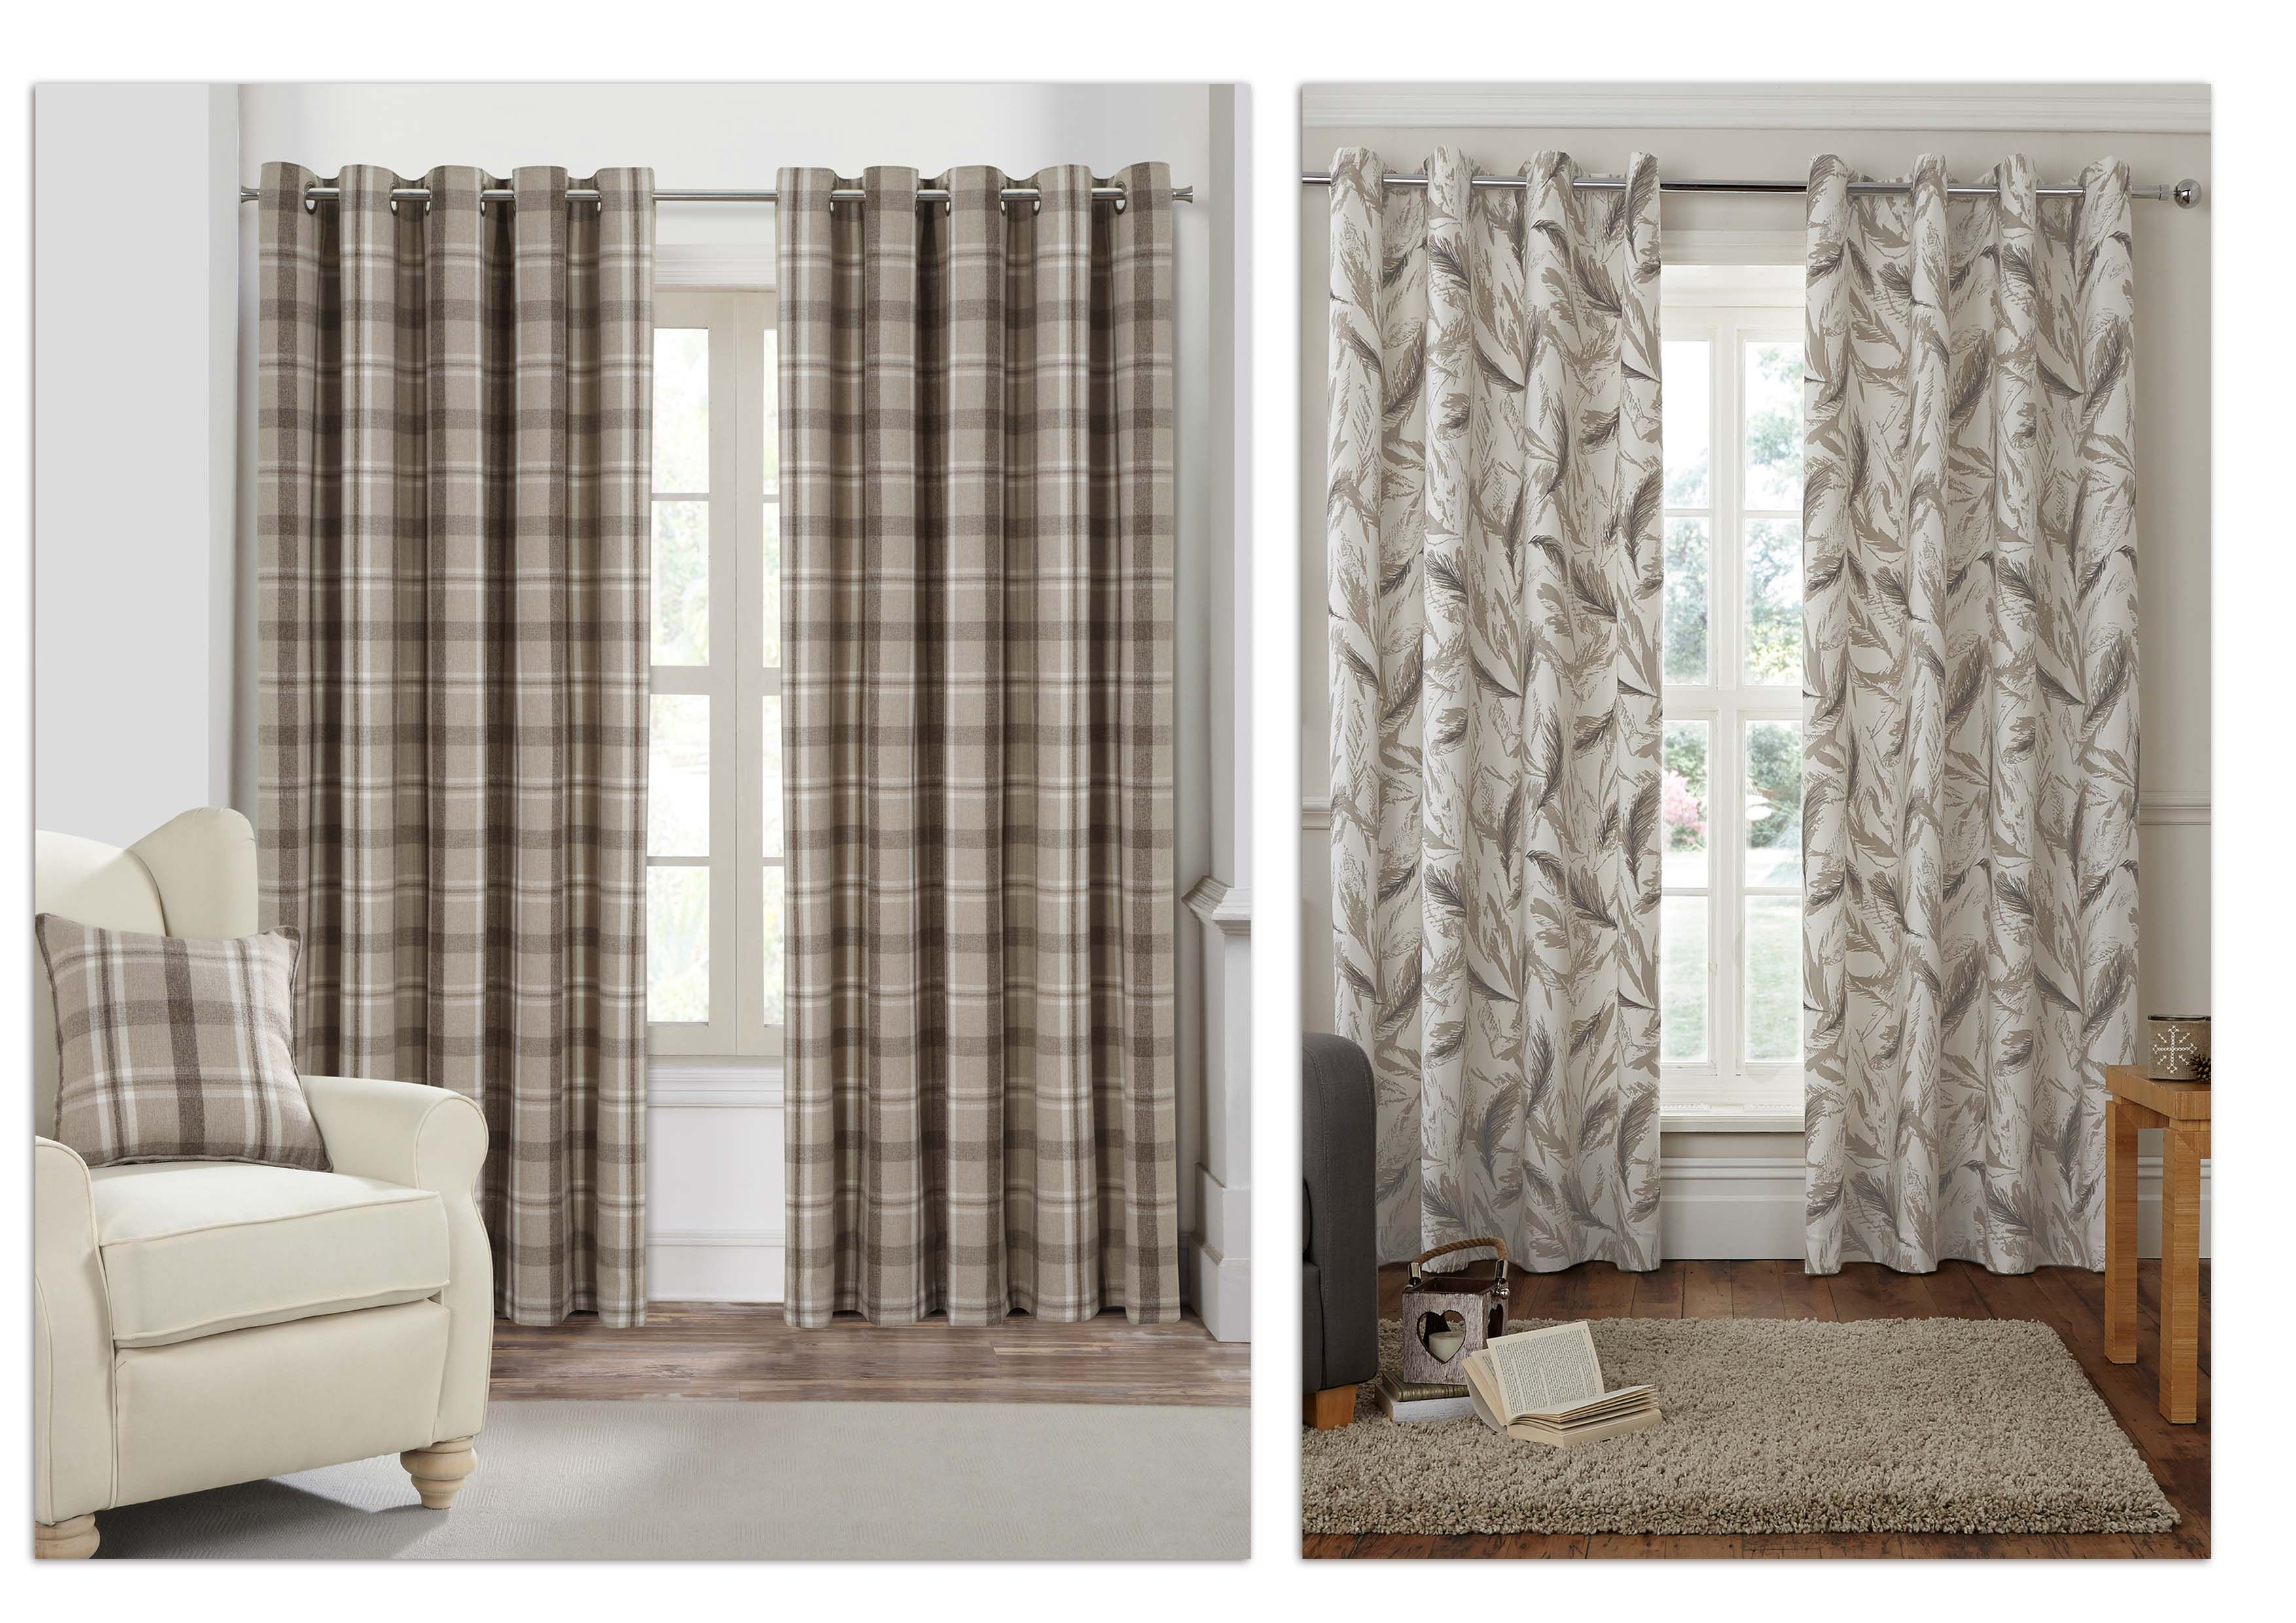 Rustic Woodland Woven Check Curtains, Feather Printed Curtains